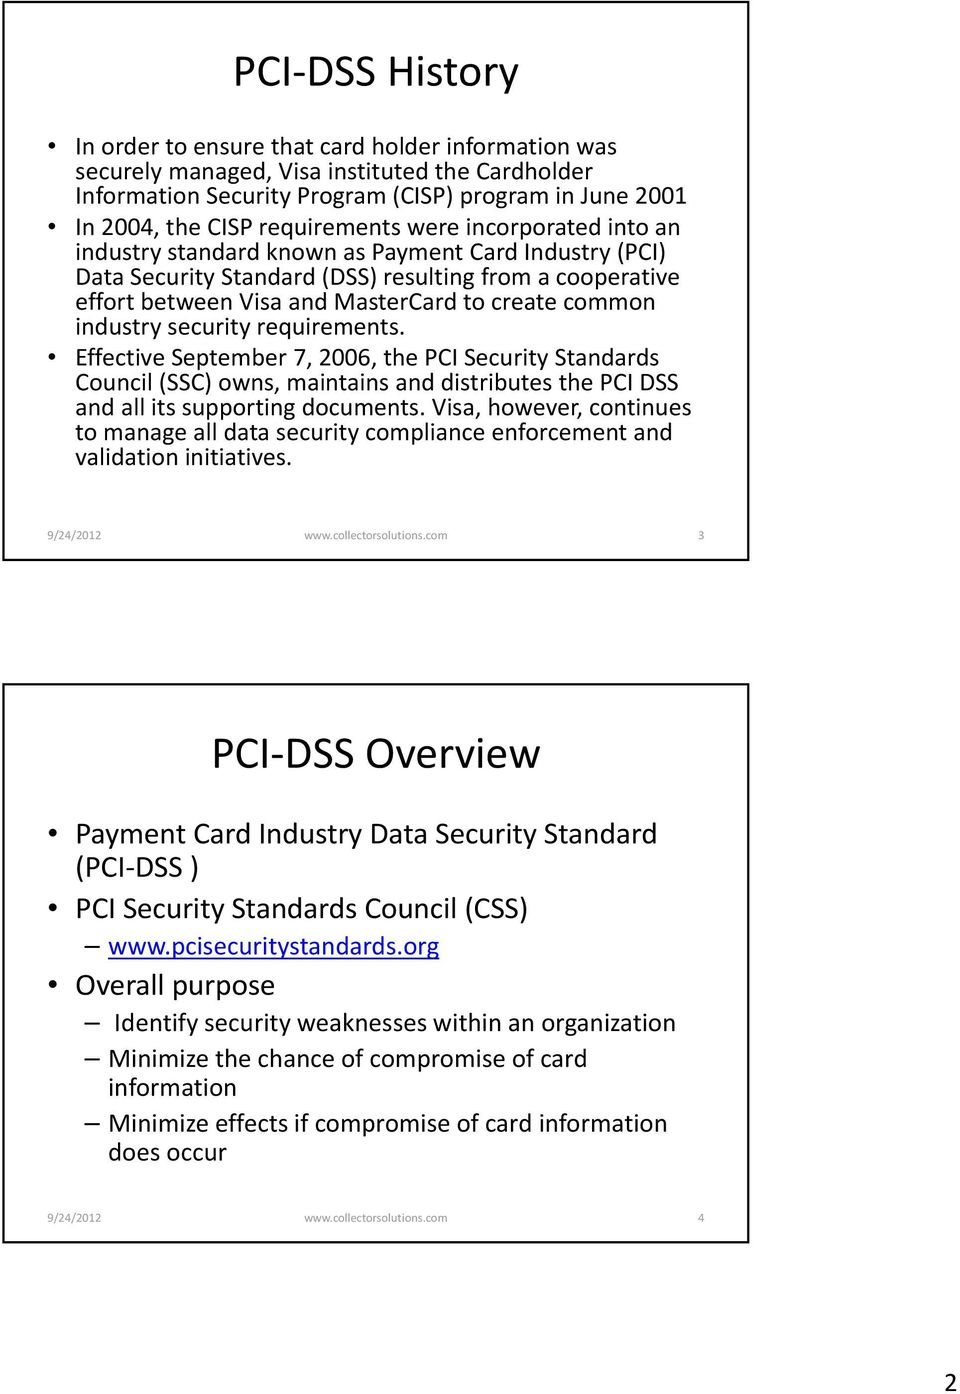 common industry security requirements. Effective September 7, 2006, the PCI Security Standards Council (SSC) owns, maintains and distributes the PCI DSS and all its supporting documents.